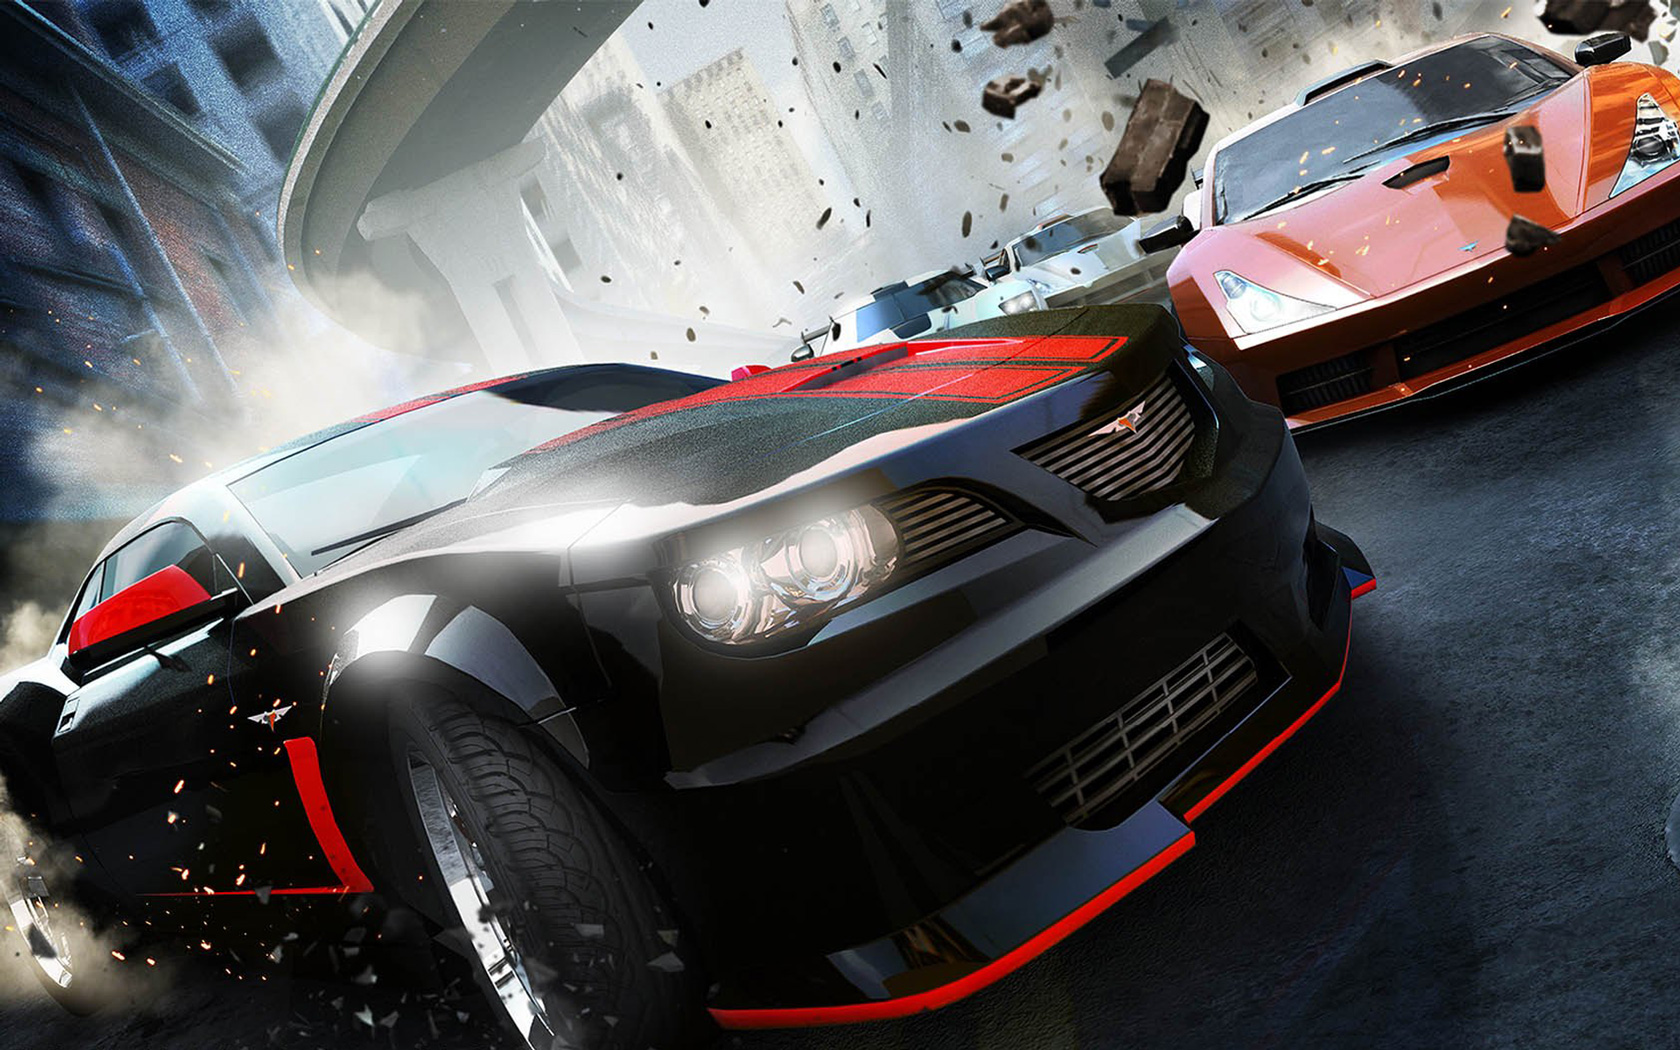 Free Ridge Racer Unbounded Wallpaper in 1680x1050